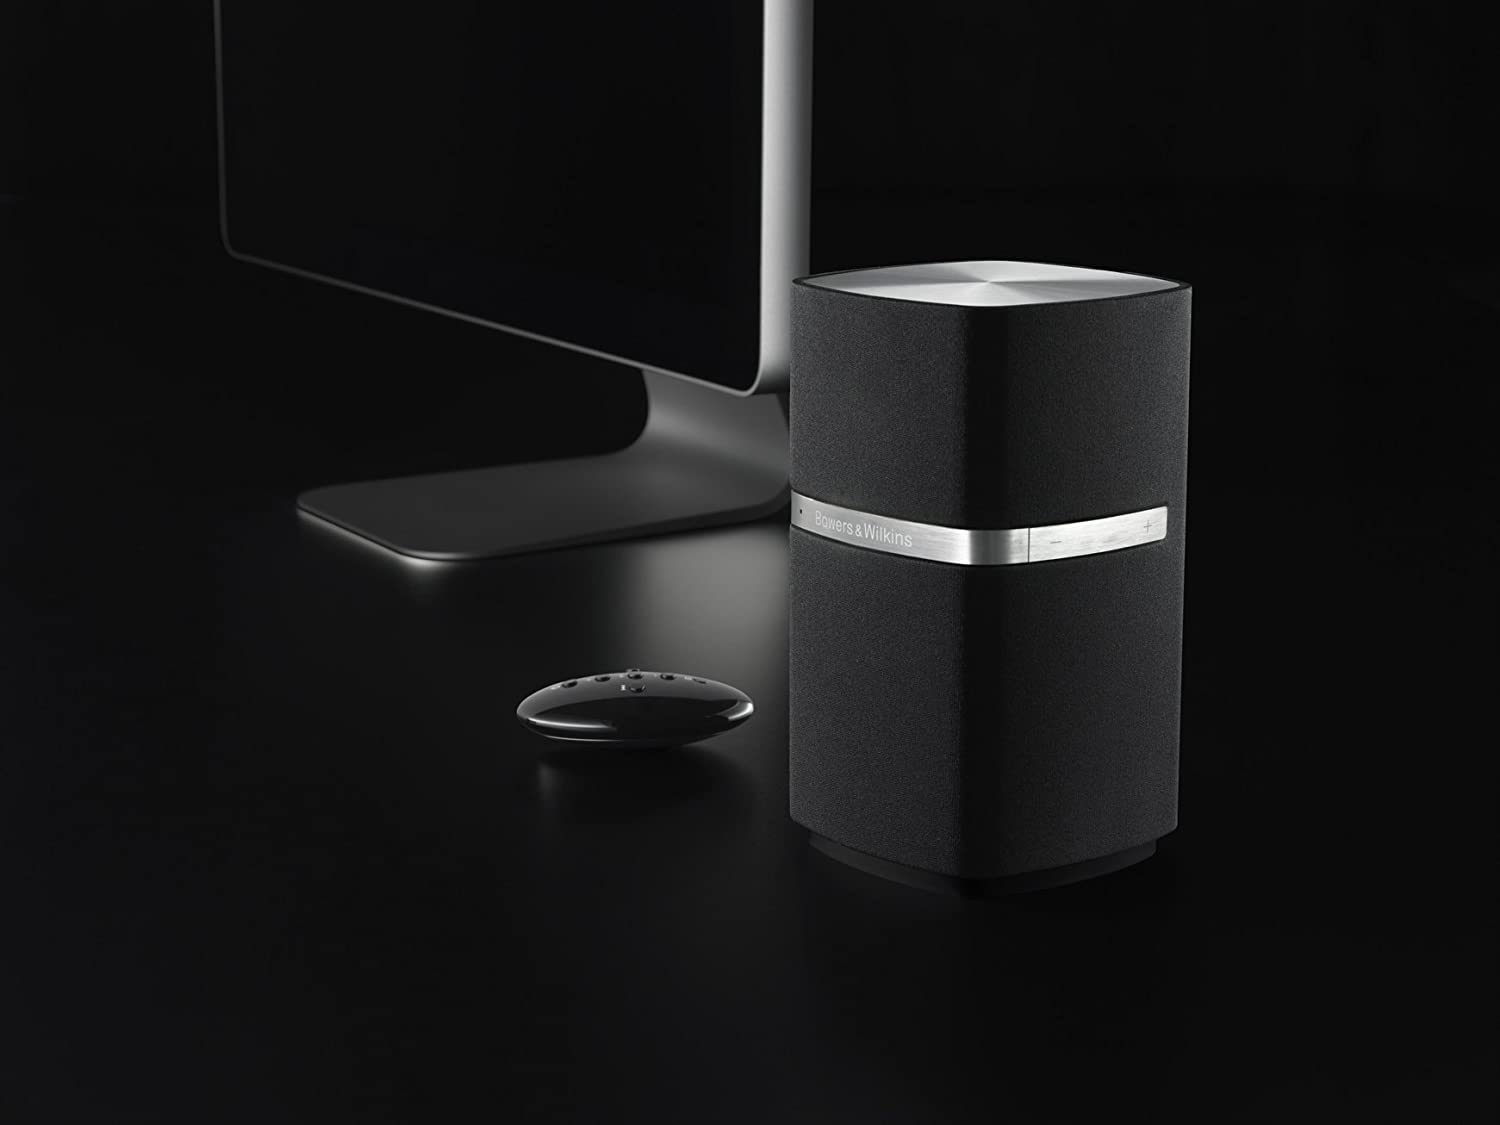 Bowers & Wilkins MM-1 Hi-Fi Speakers